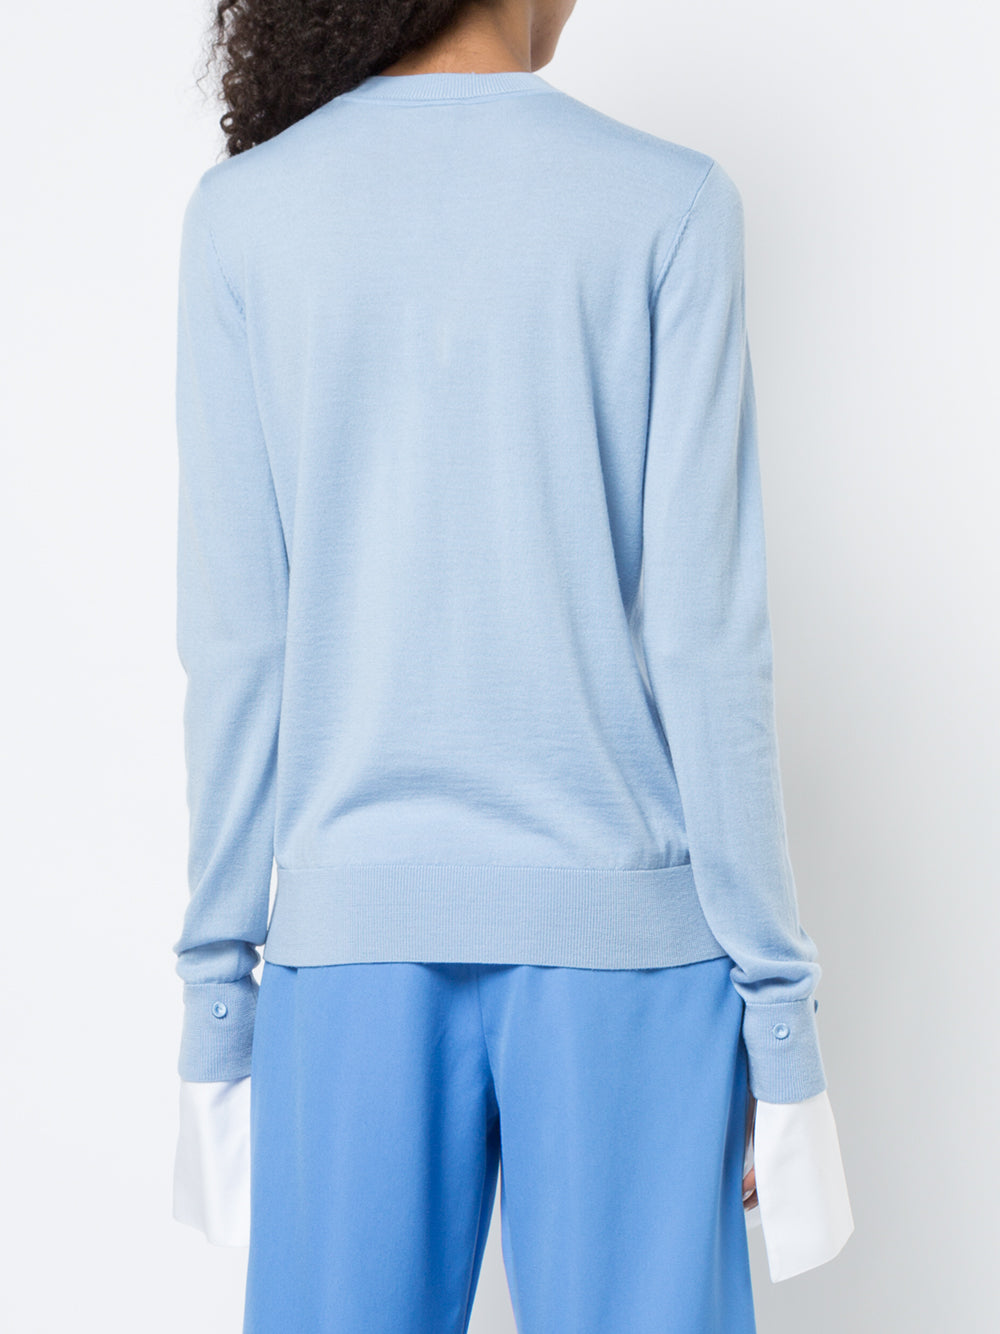 MERINO WOOL CREWNECK SWEATER WITH DETACHABLE OXFORD COTTON CUFF